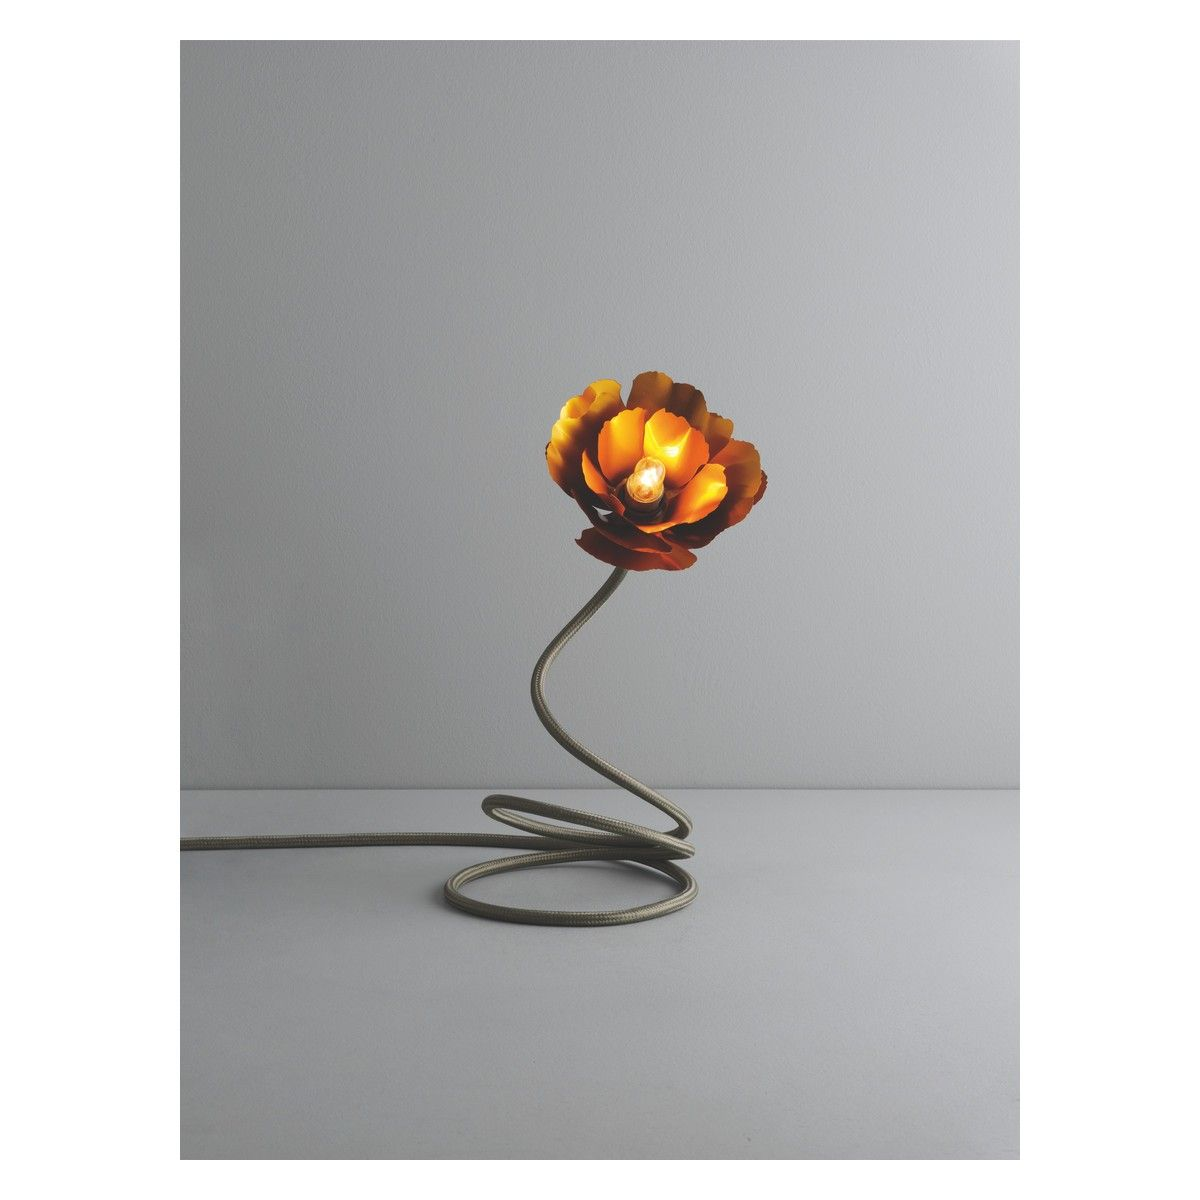 Flexible Stemmed Helena Gold Flower Table Lamp Designed By Christensen Exclusively For Habitat Buy Now At UK